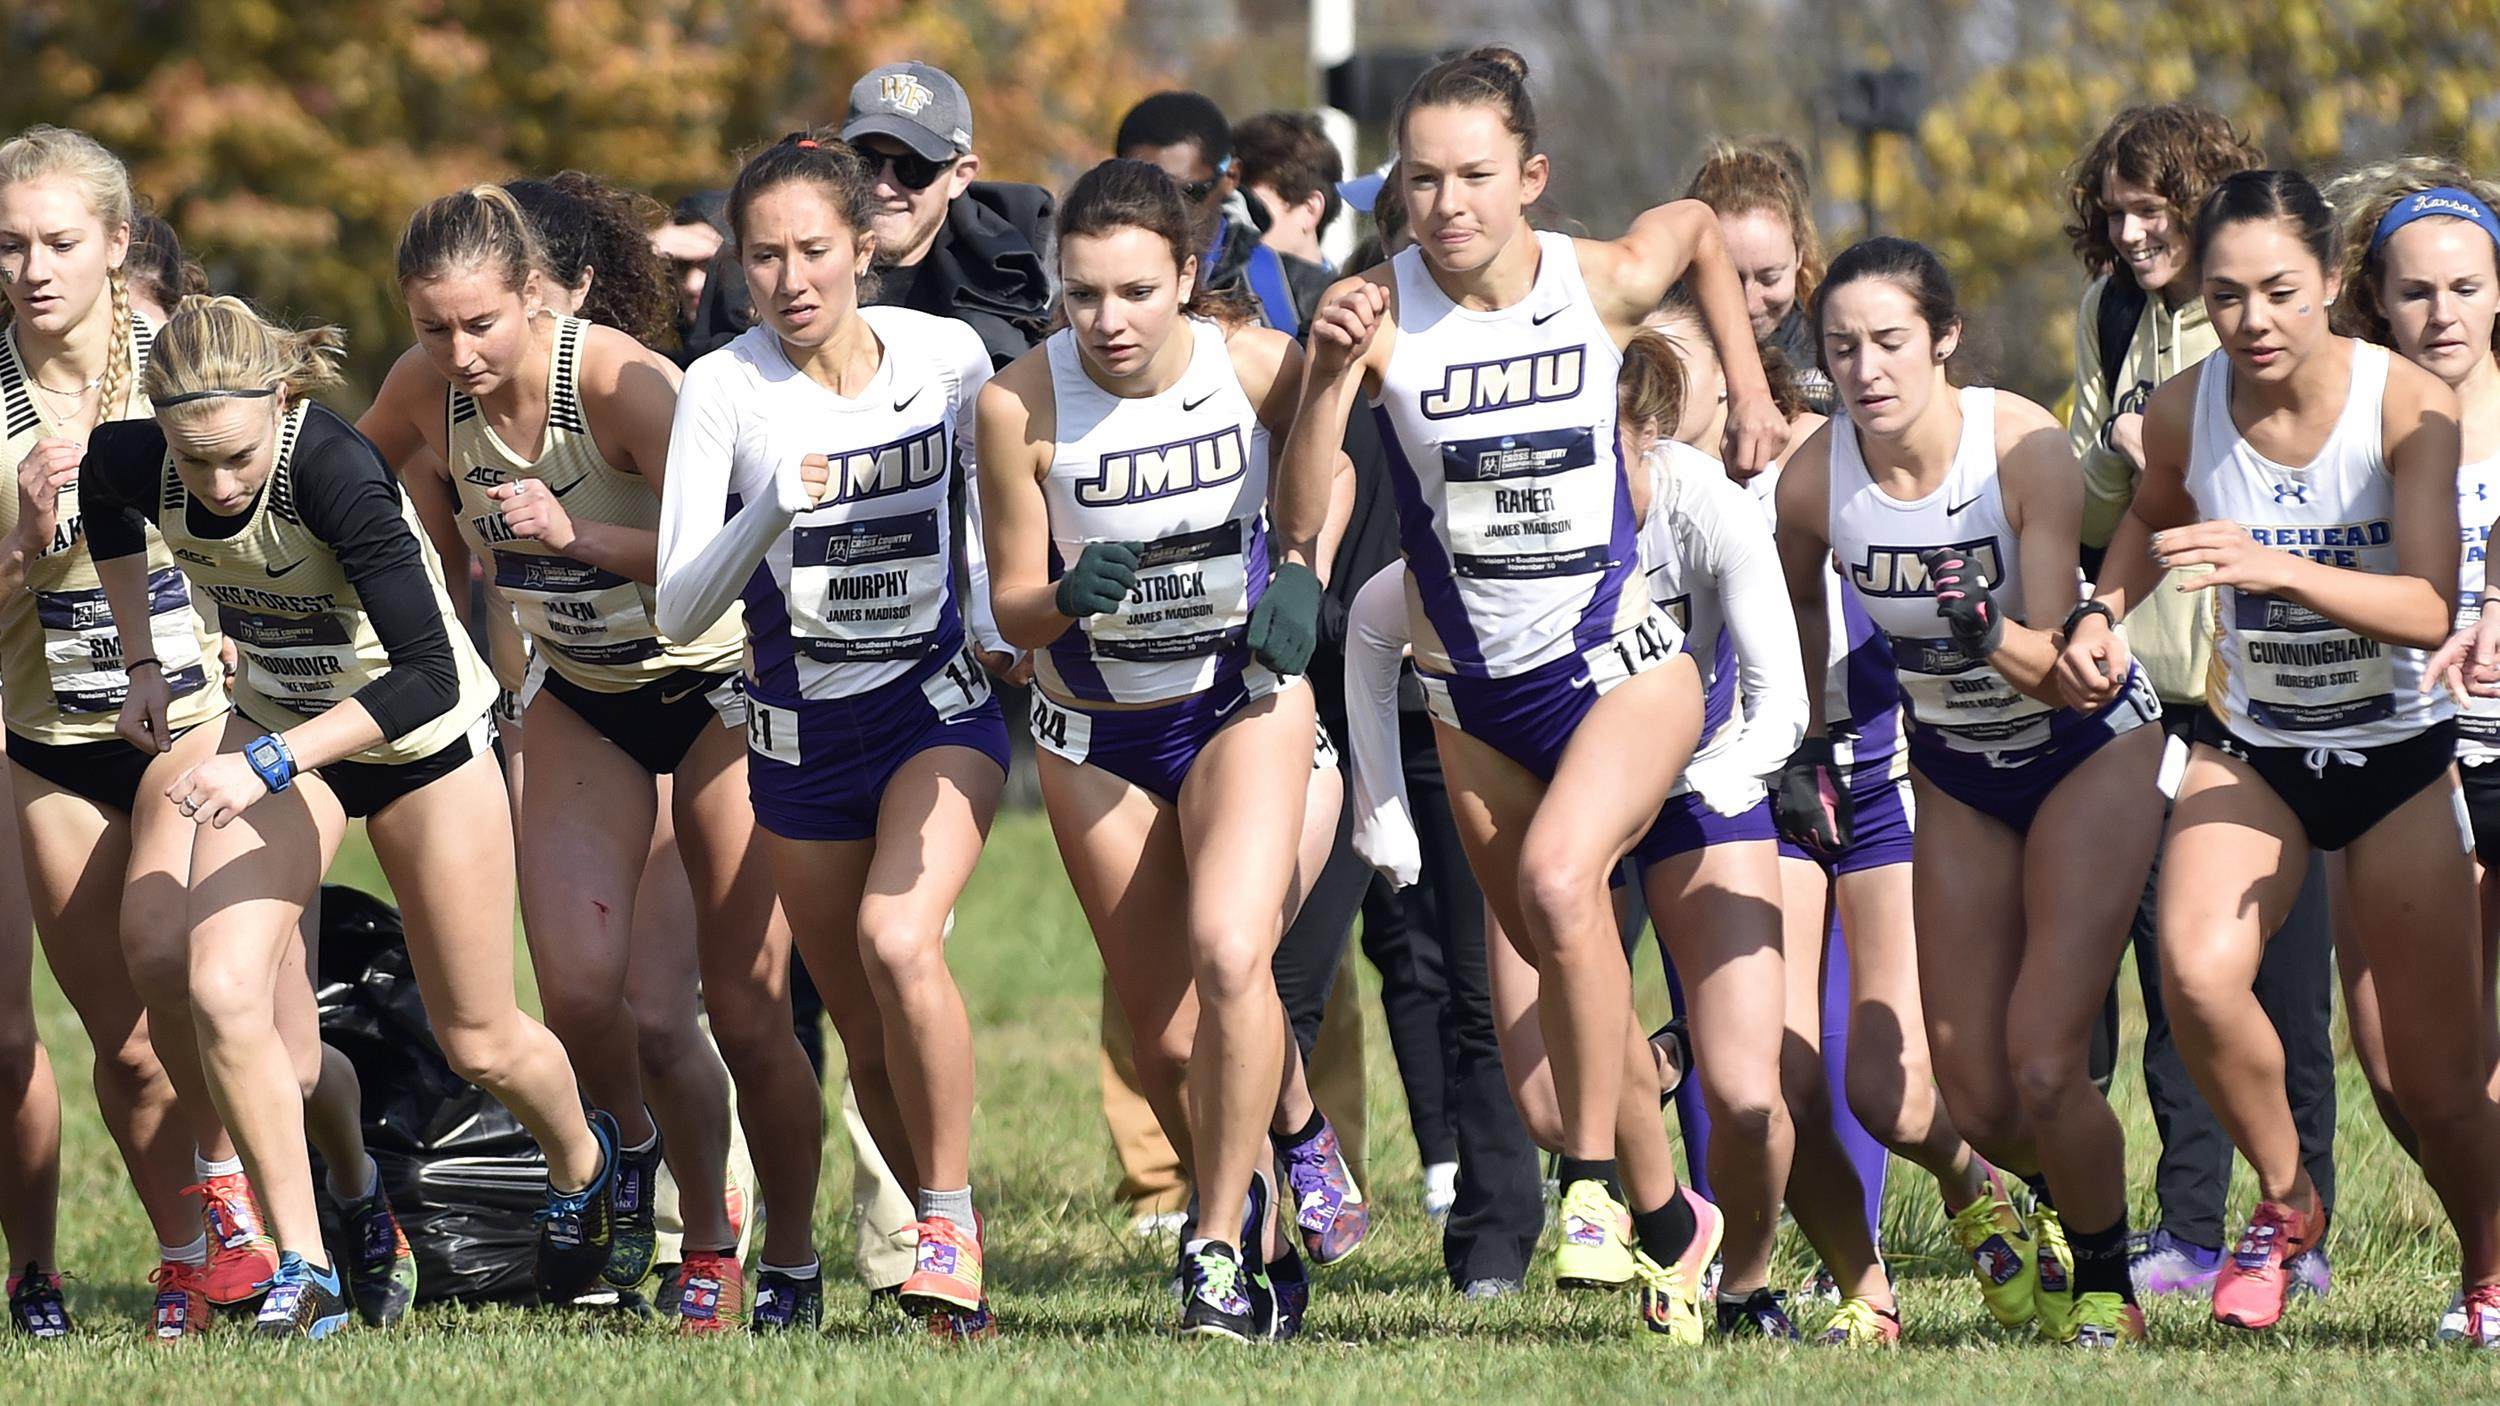 Women's Cross Country: Dukes Win ECAC Championship For Second Consecutive Year)